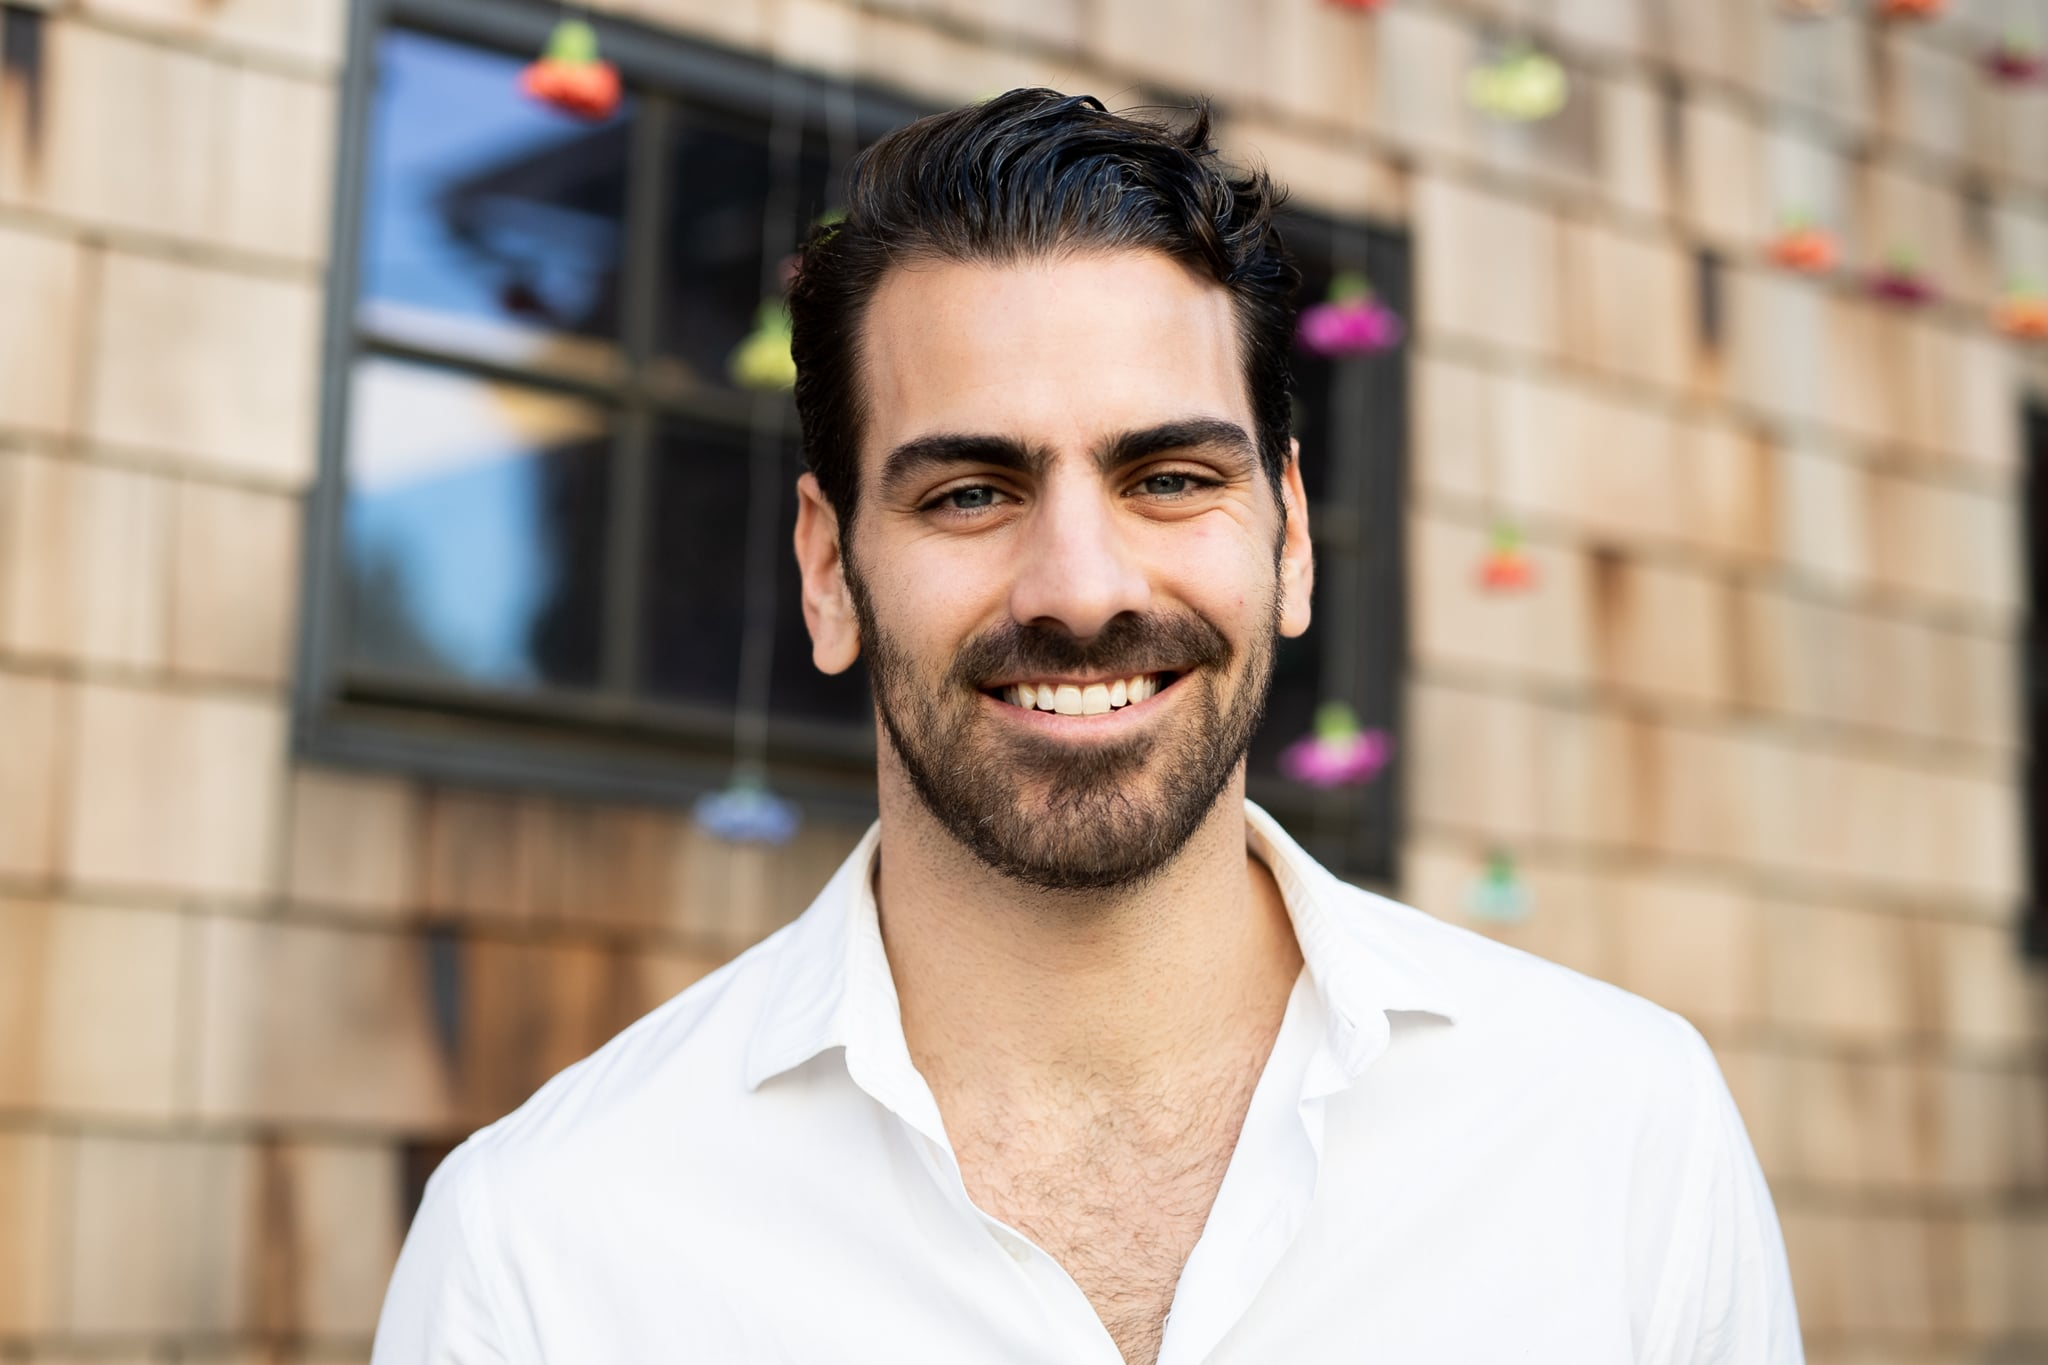 LOS ANGELES, CALIFORNIA - JANUARY 22: Nyle DiMarco attends the 3rd annual National Day of Racial Healing at Array on January 22, 2019 in Los Angeles, California. (Photo by Emma McIntyre/Getty Images)